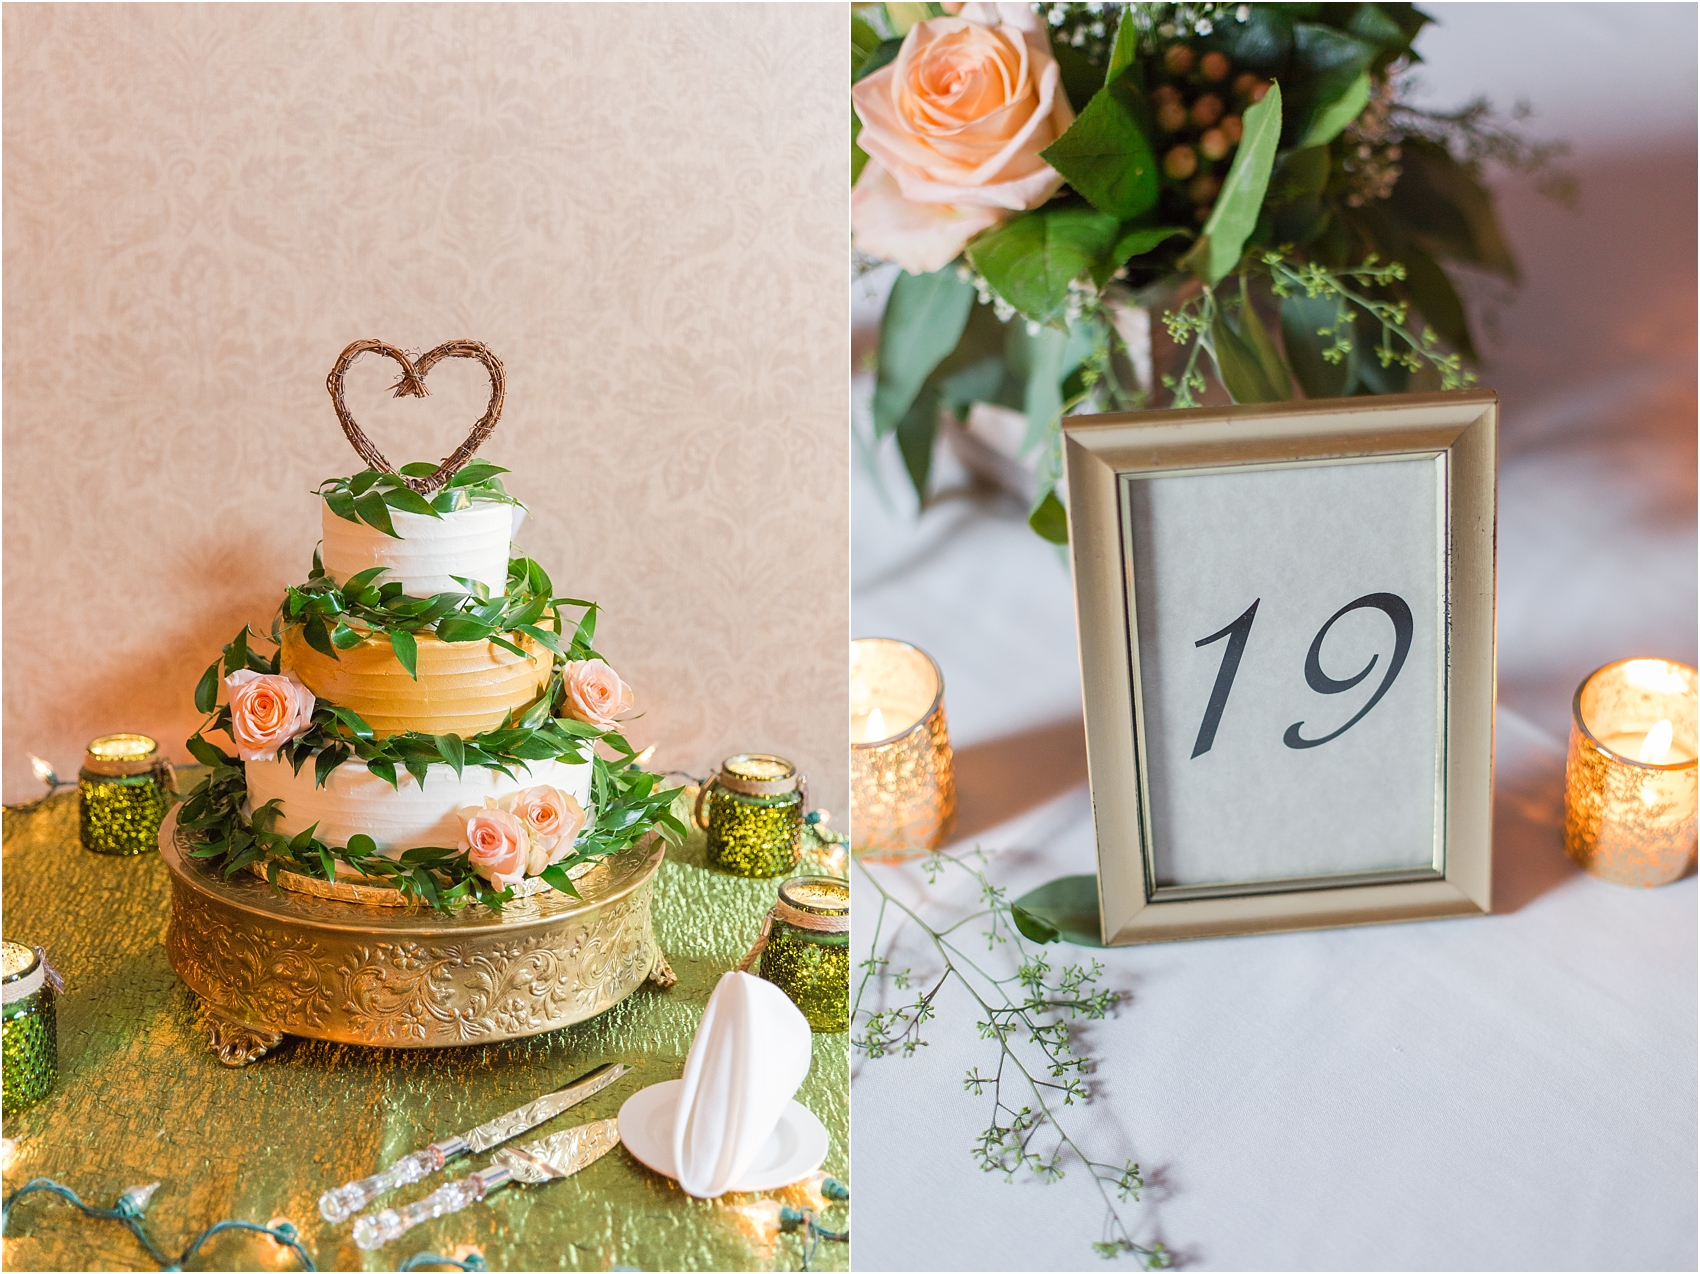 lord-of-the-rings-inspired-wedding-photos-at-crystal-gardens-in-howell-mi-by-courtney-carolyn-photography_0064.jpg